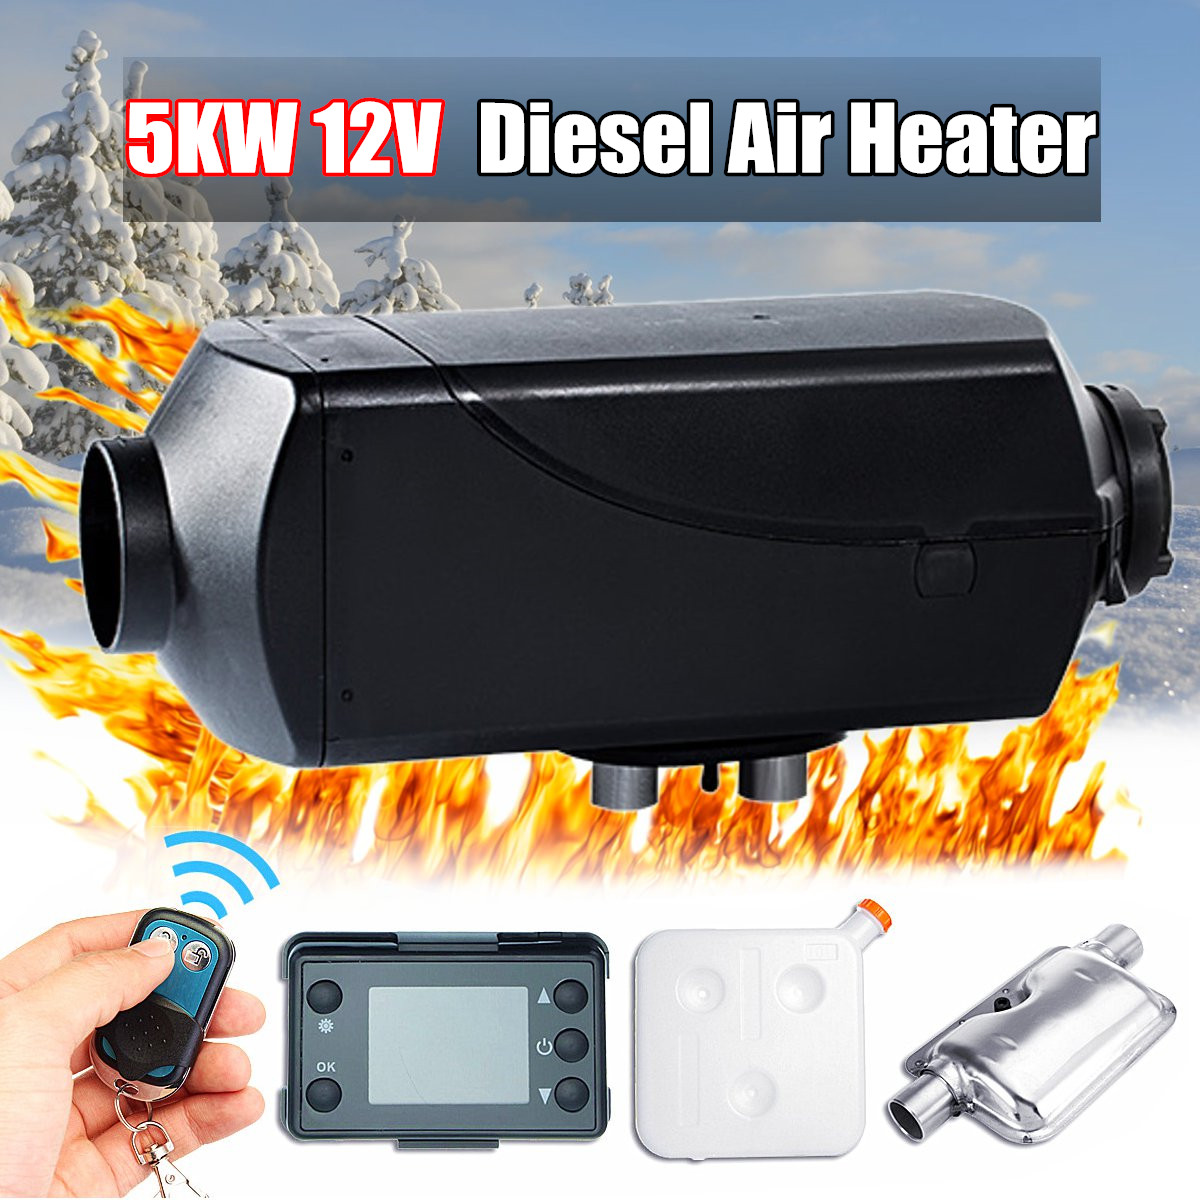 12V 5KW LCD Switch Car Air Diesel Parking Heater For Trucks Boats Motor-Home Bus